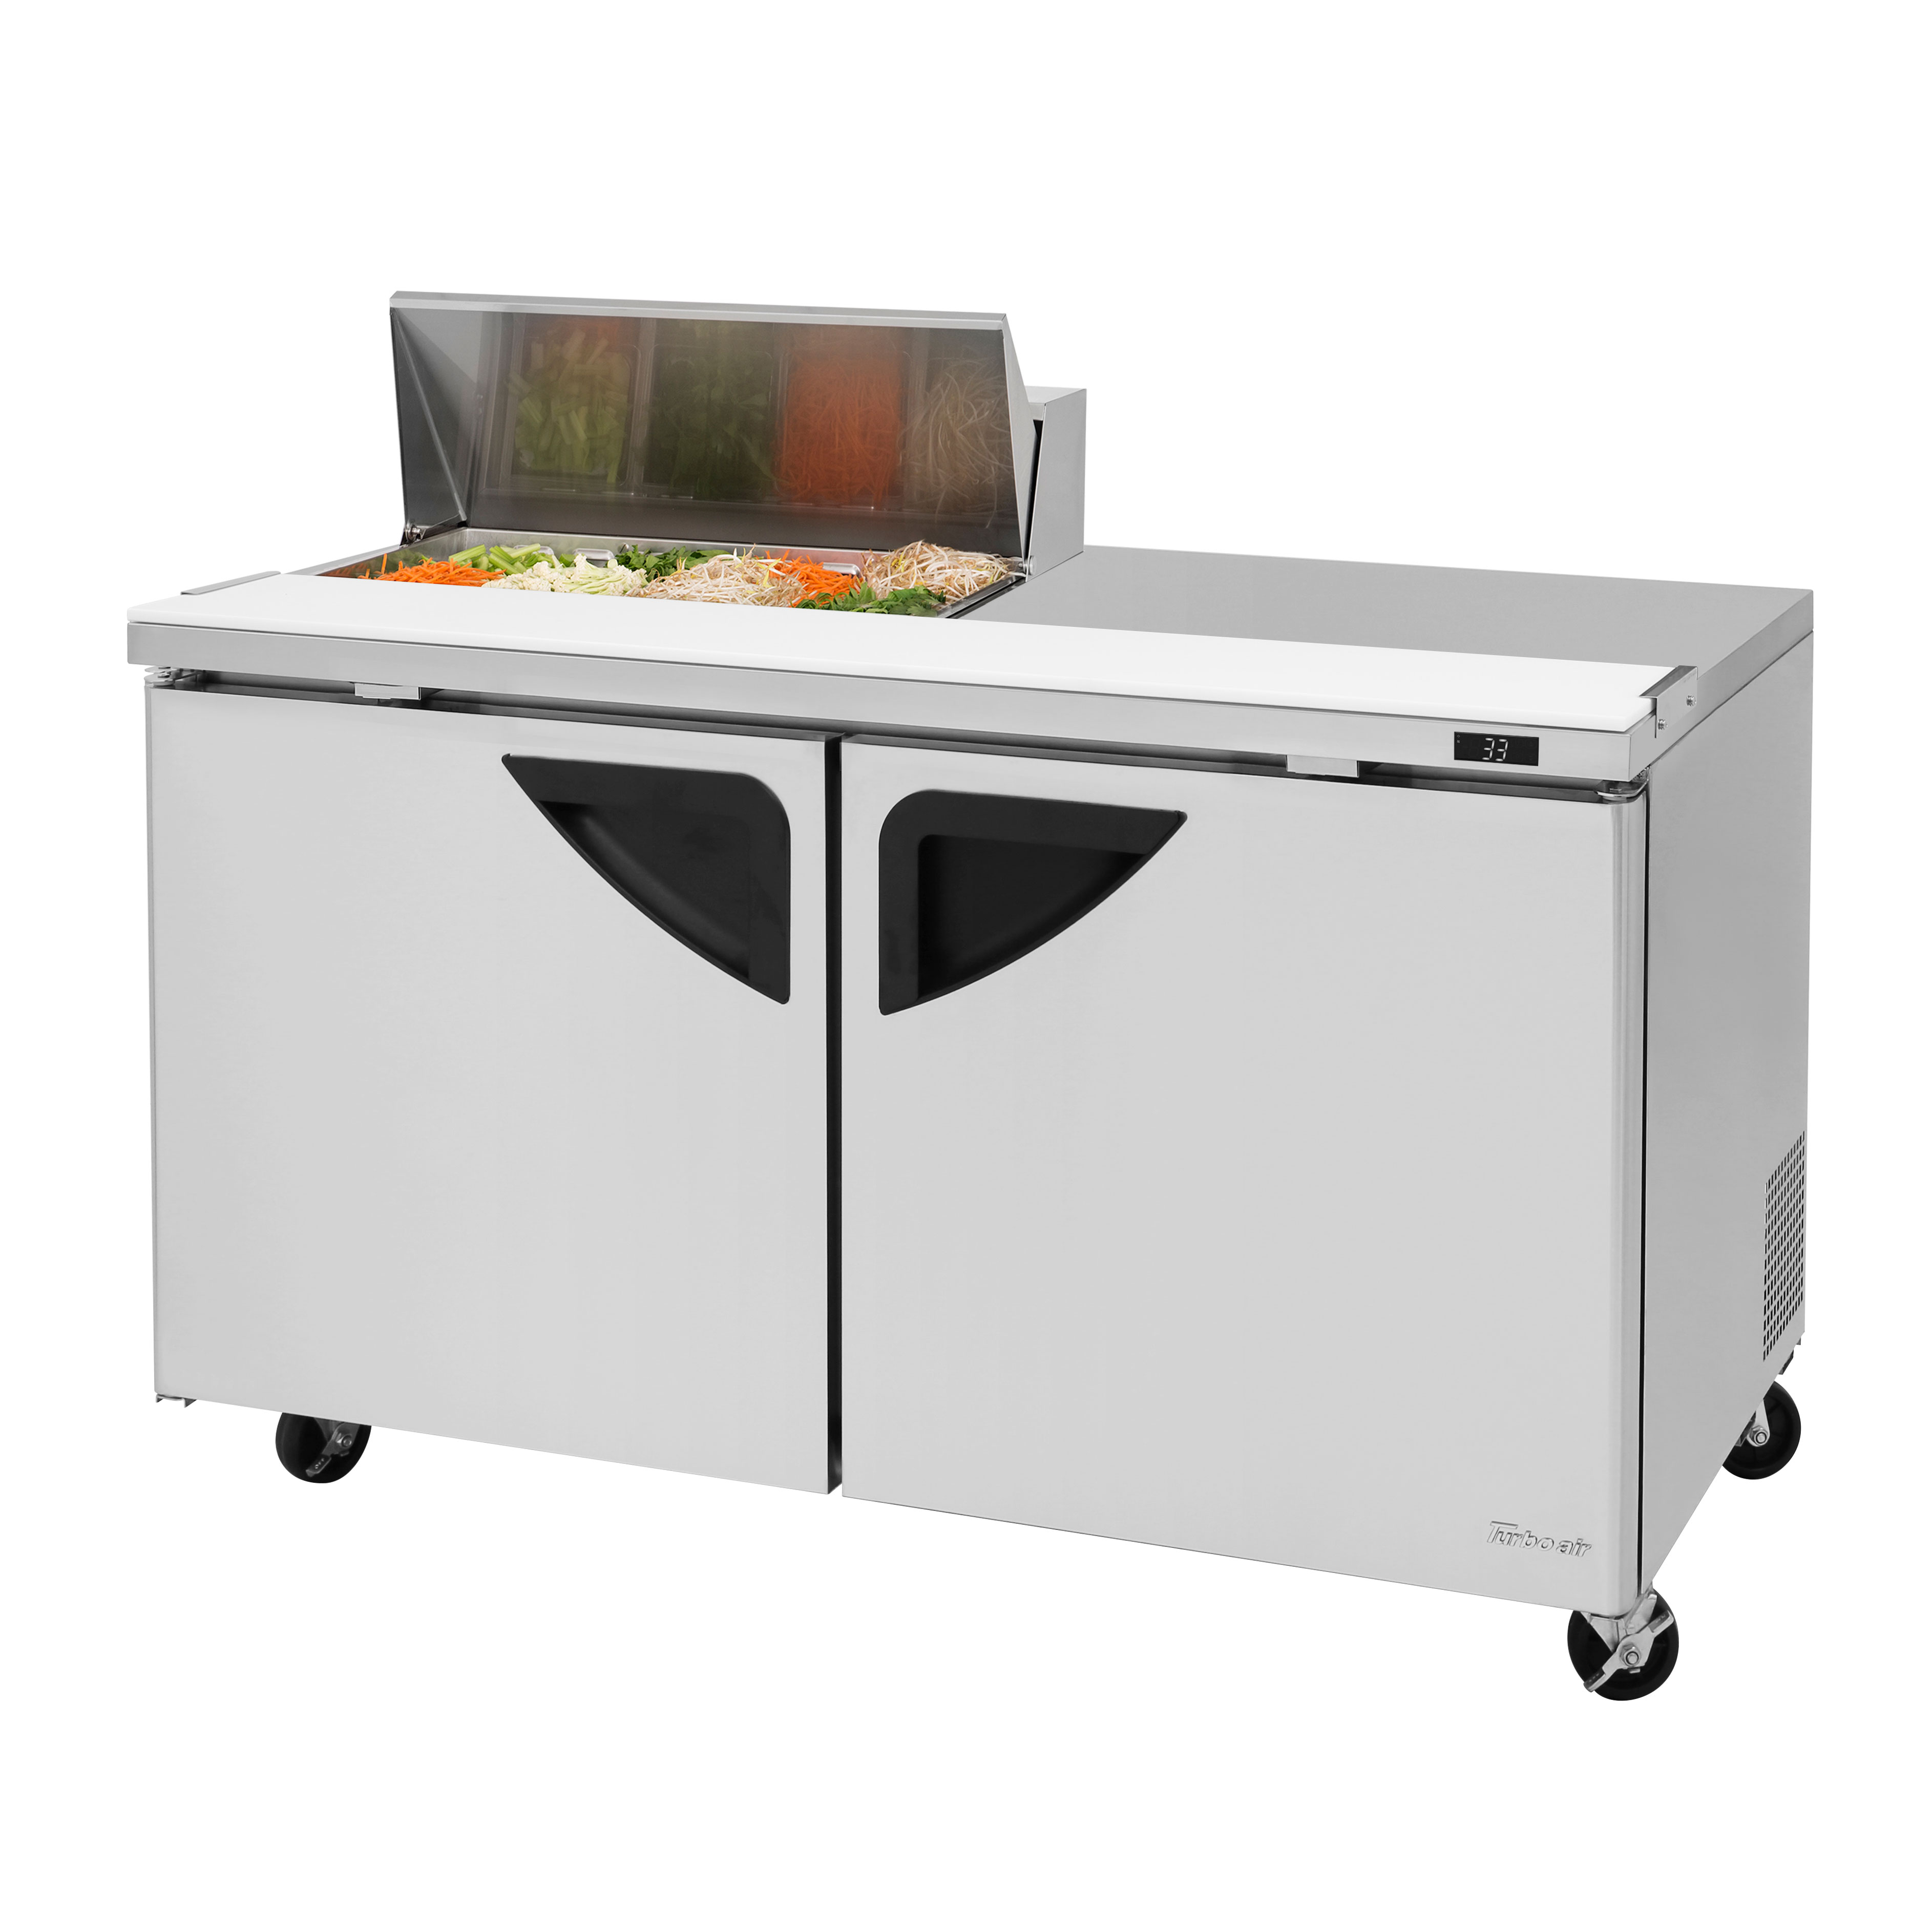 Turbo Air TST-60SD-08S-N refrigerated counter, sandwich / salad unit